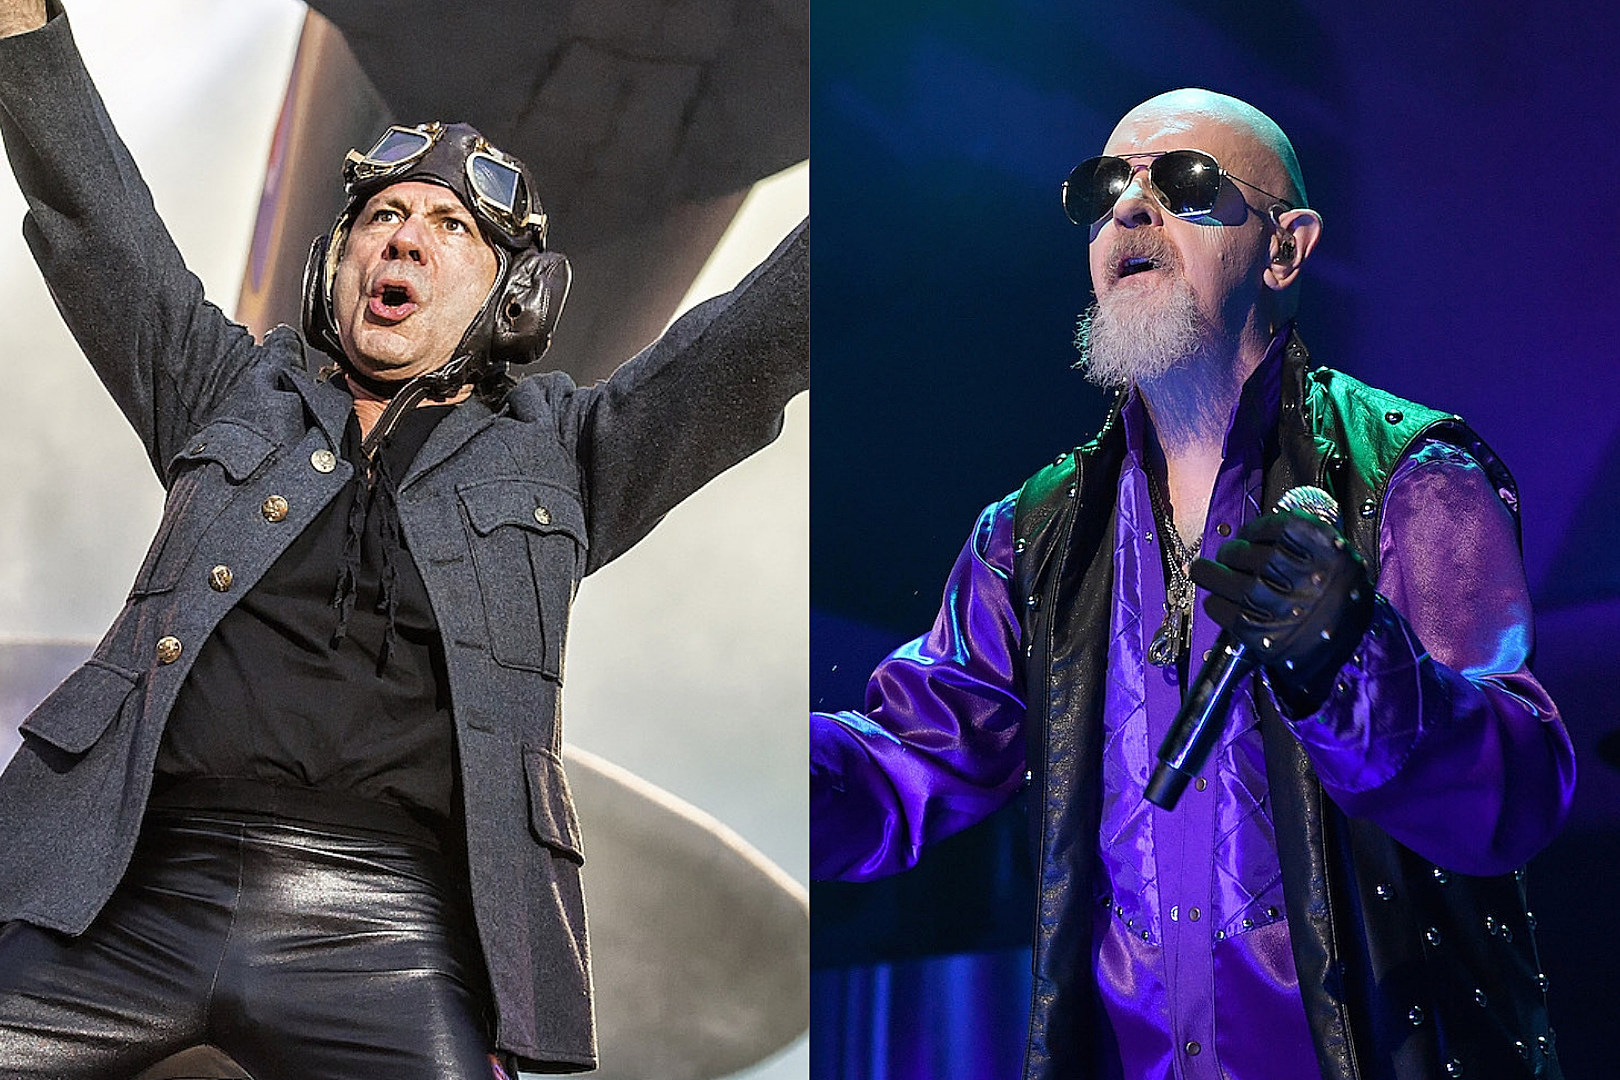 Iron Maiden, Judas Priest + More Join Campaign to Save Live Music